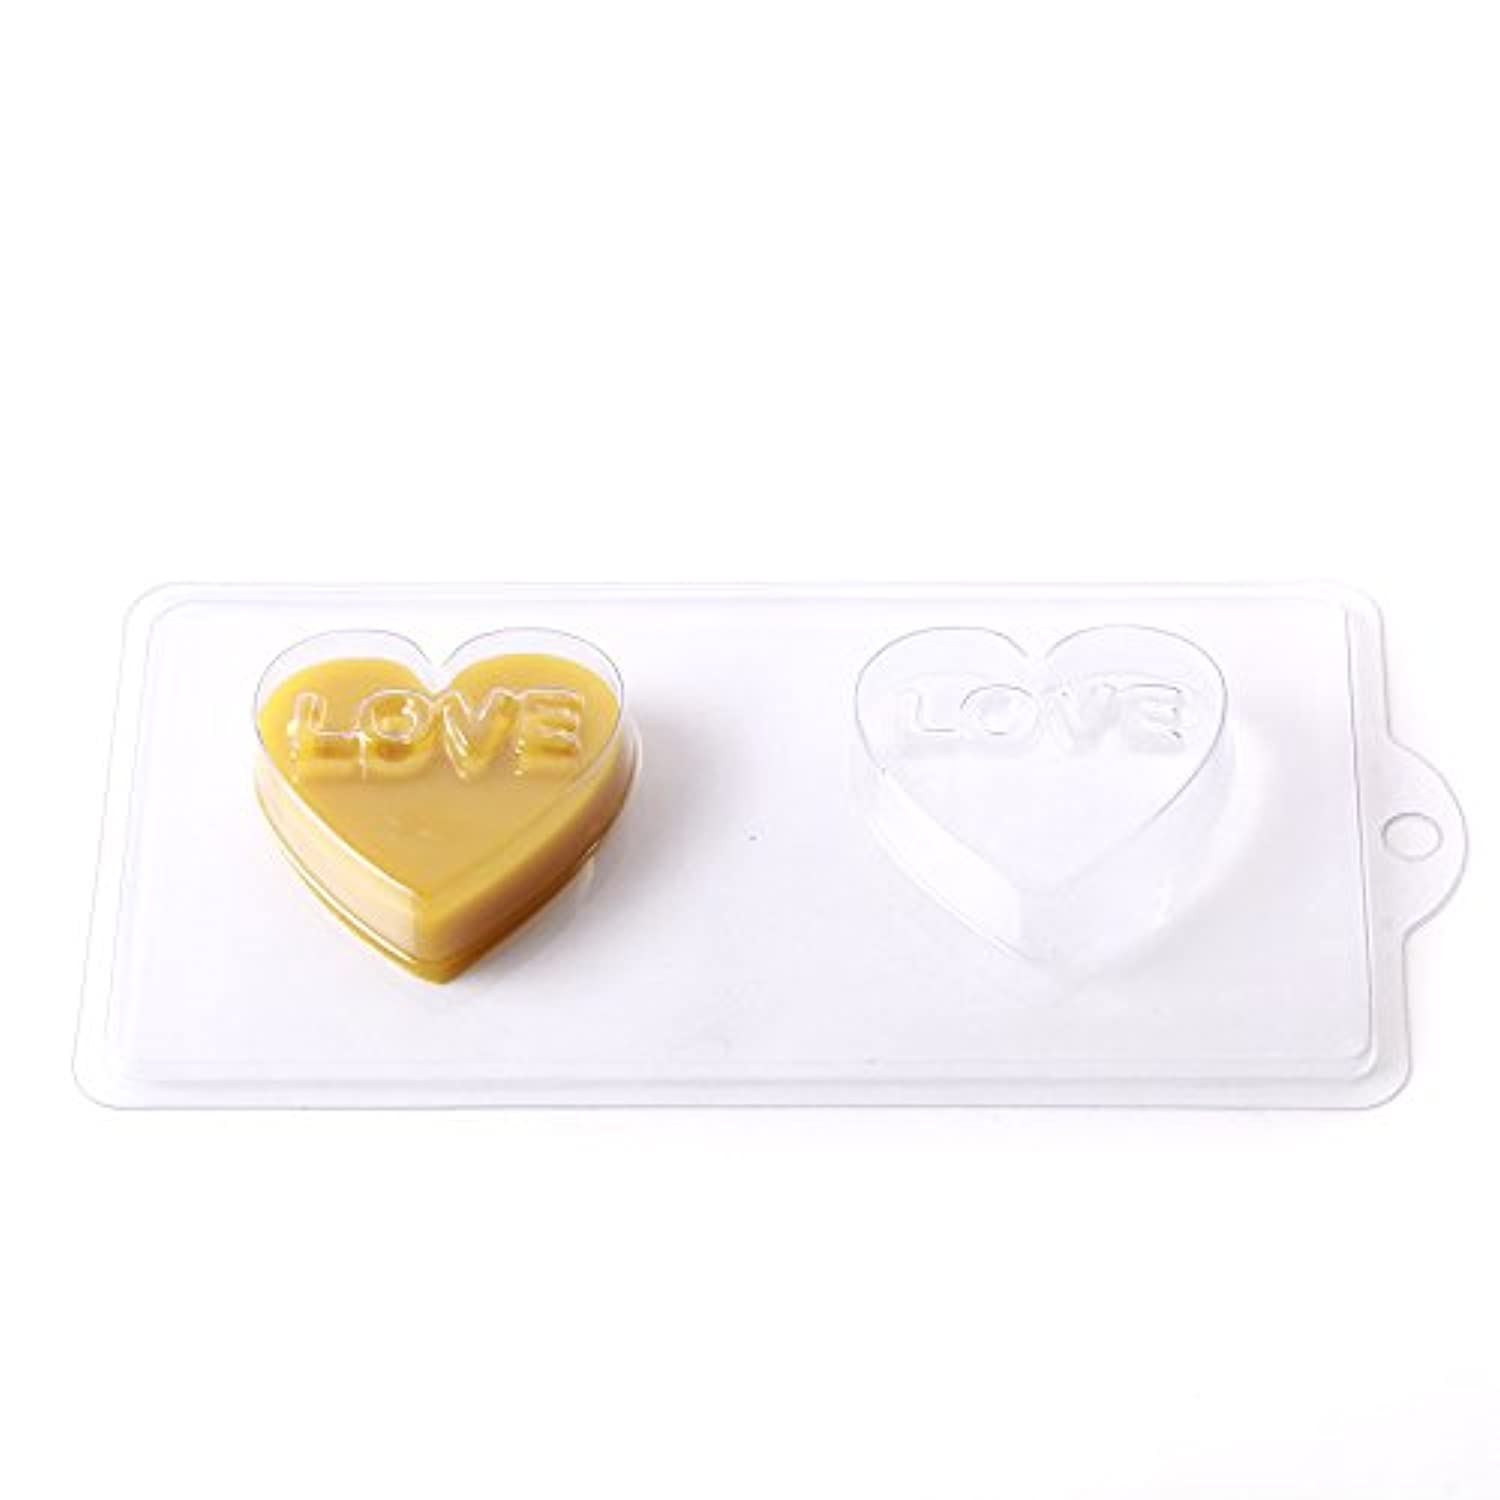 5 Cavity Heart With Love Soap/Bath Bomb Mould Mold D08 x 5